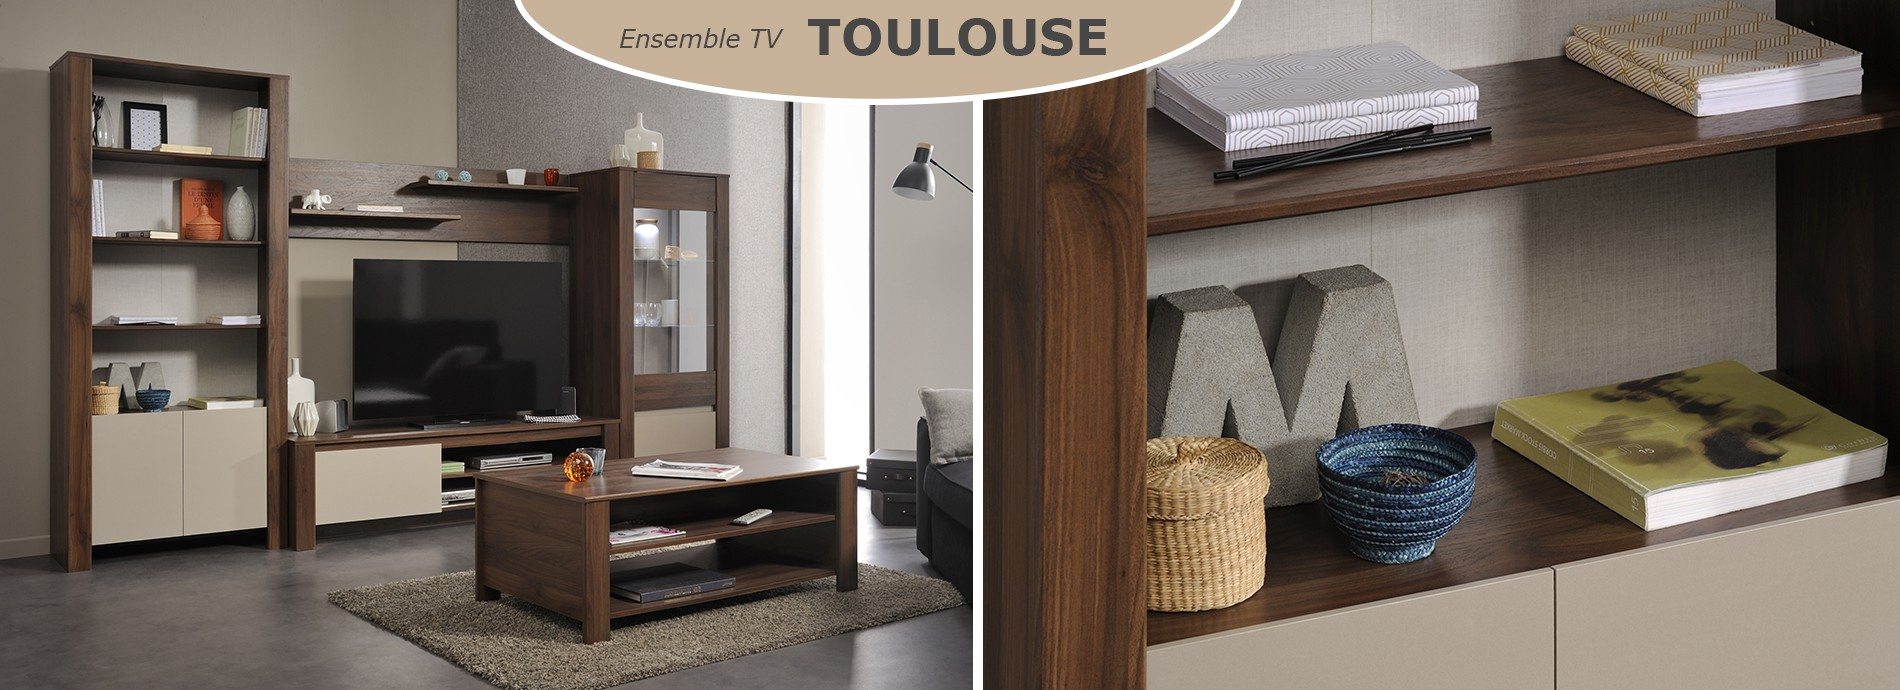 L'ensemble TV TOULOUSE - Composition meuble TV